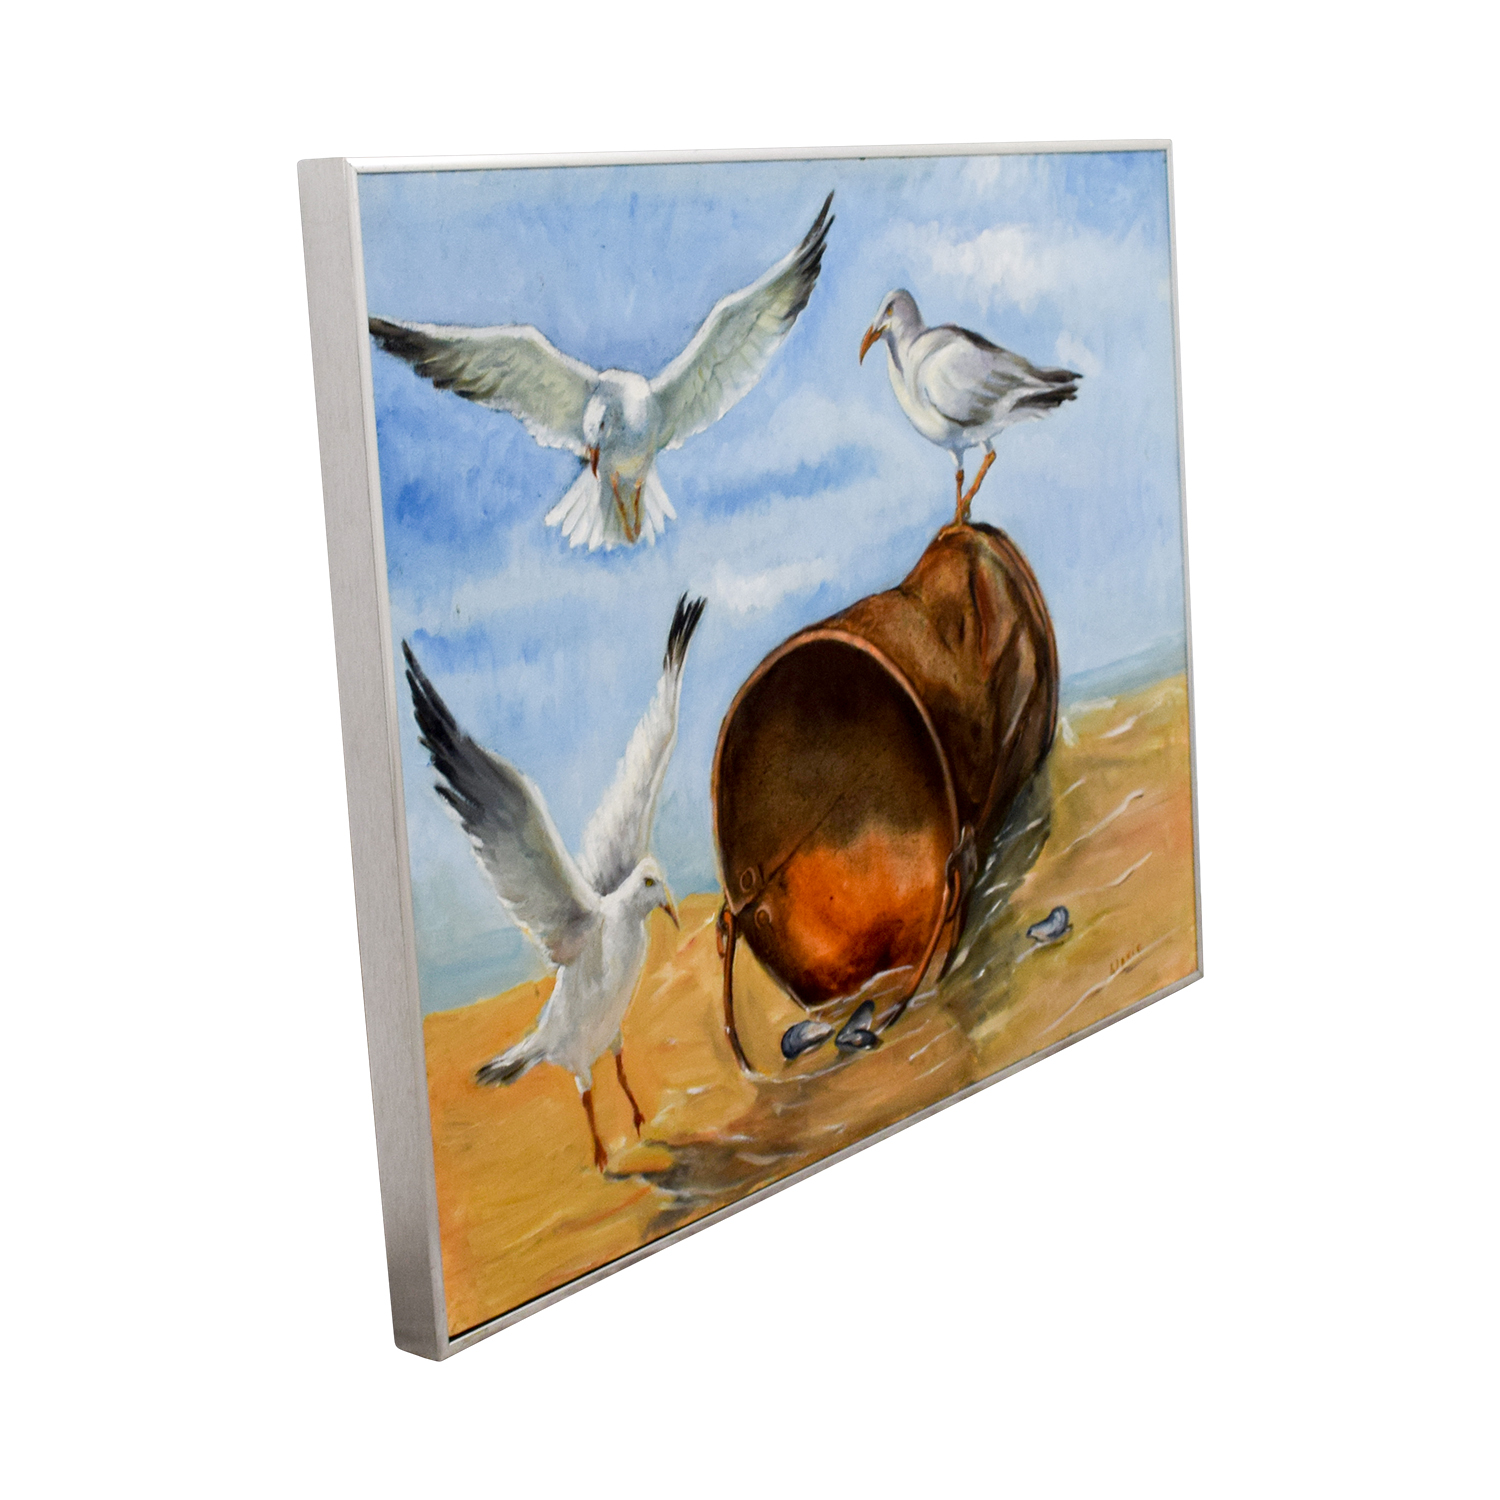 Three Seagulls with Oyster Bucket on Beach Painting / Decor